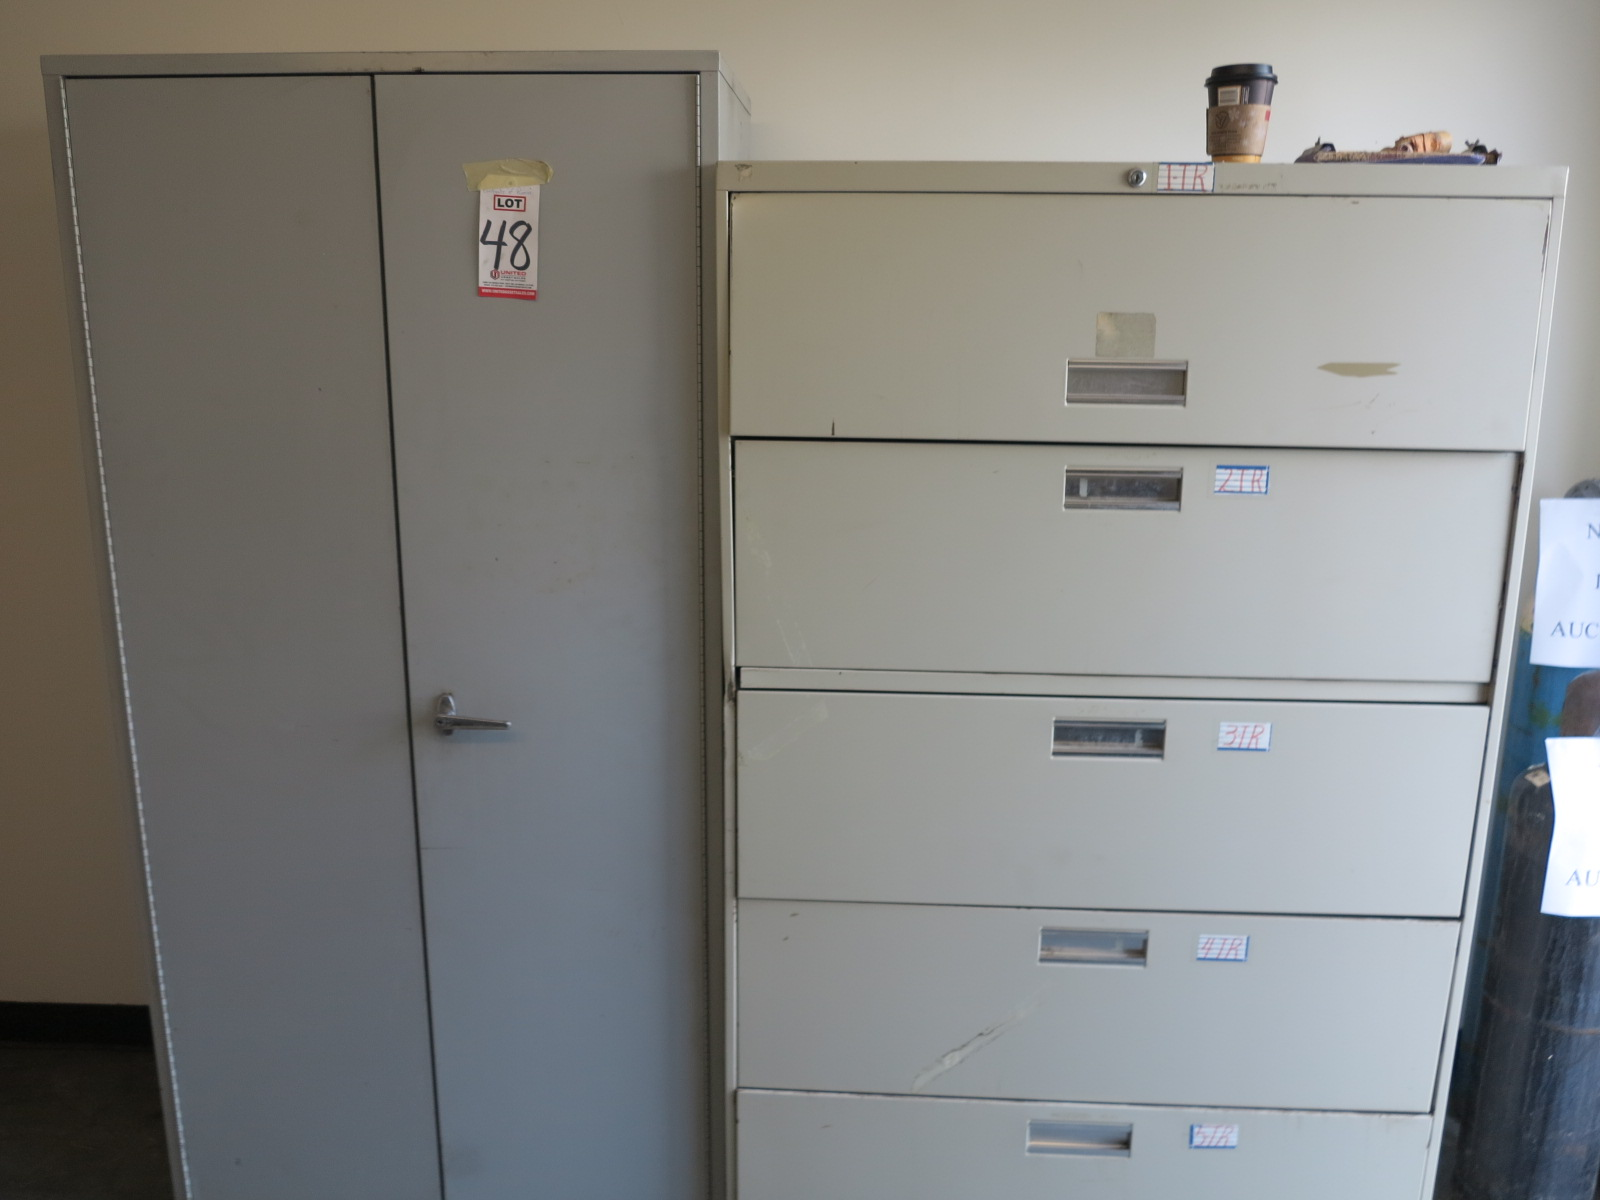 LOT - CONTENTS OF ROOM, TO INCLUDE: REFRIGERATOR, DESK, ALL FILE AND STORAGE CABINETS AND NORDIC - Image 2 of 3